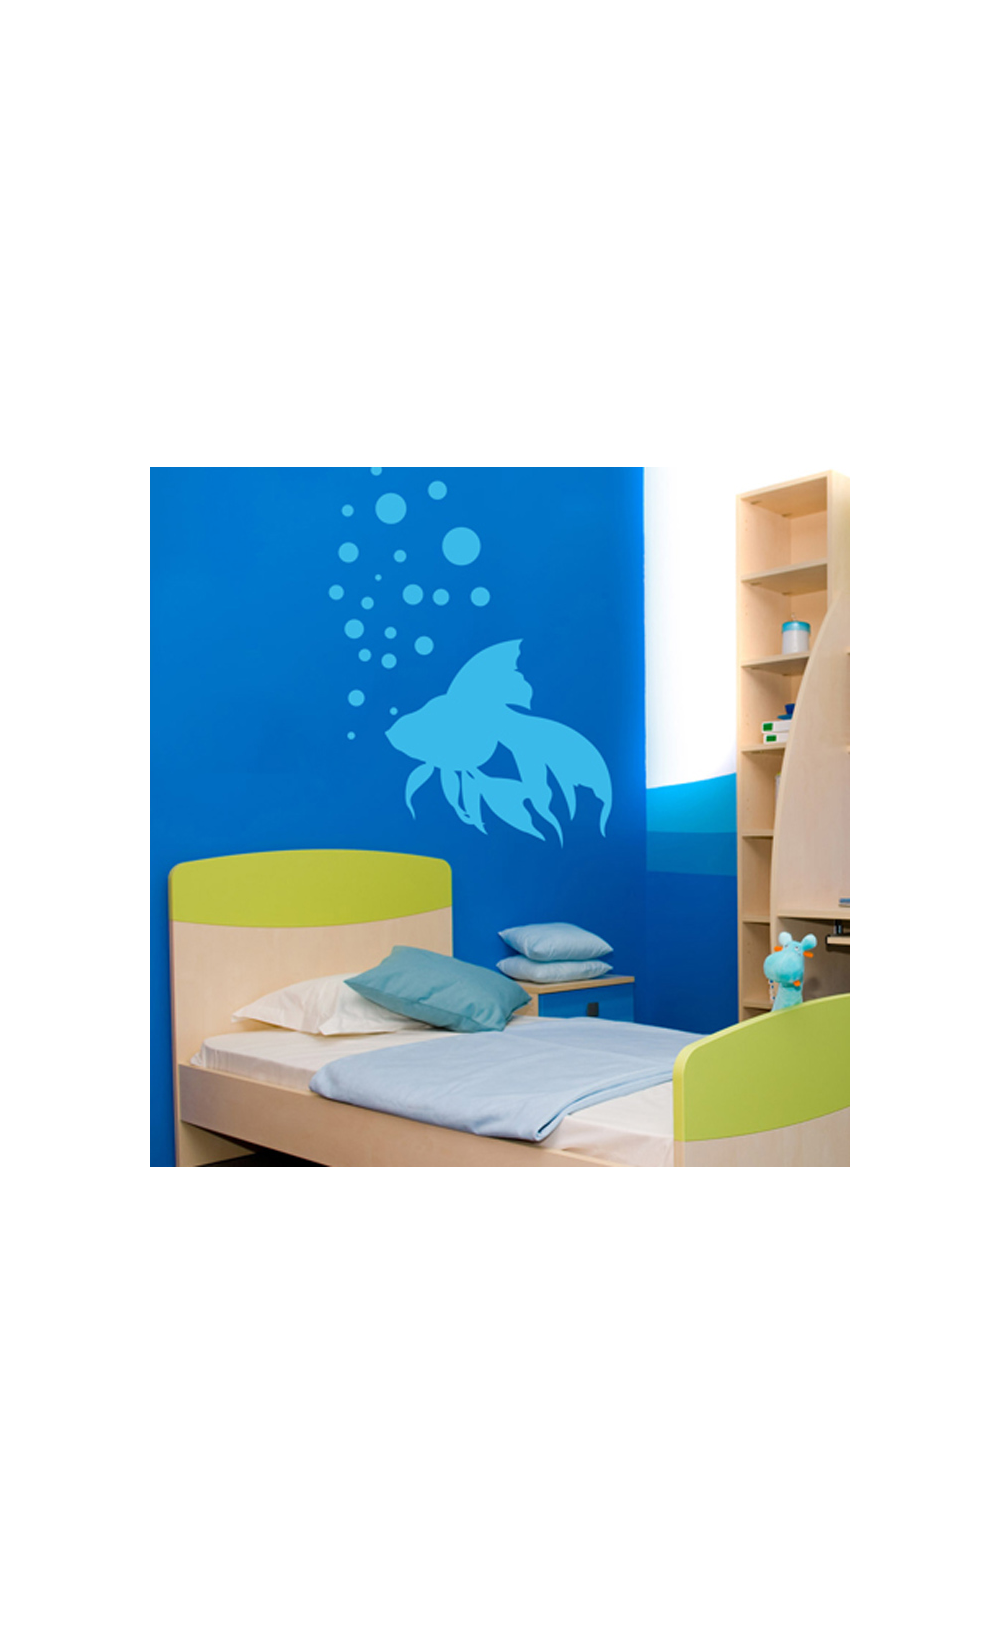 sticker mural pour d corer son int rieur petit prix mod le poisson japonais. Black Bedroom Furniture Sets. Home Design Ideas